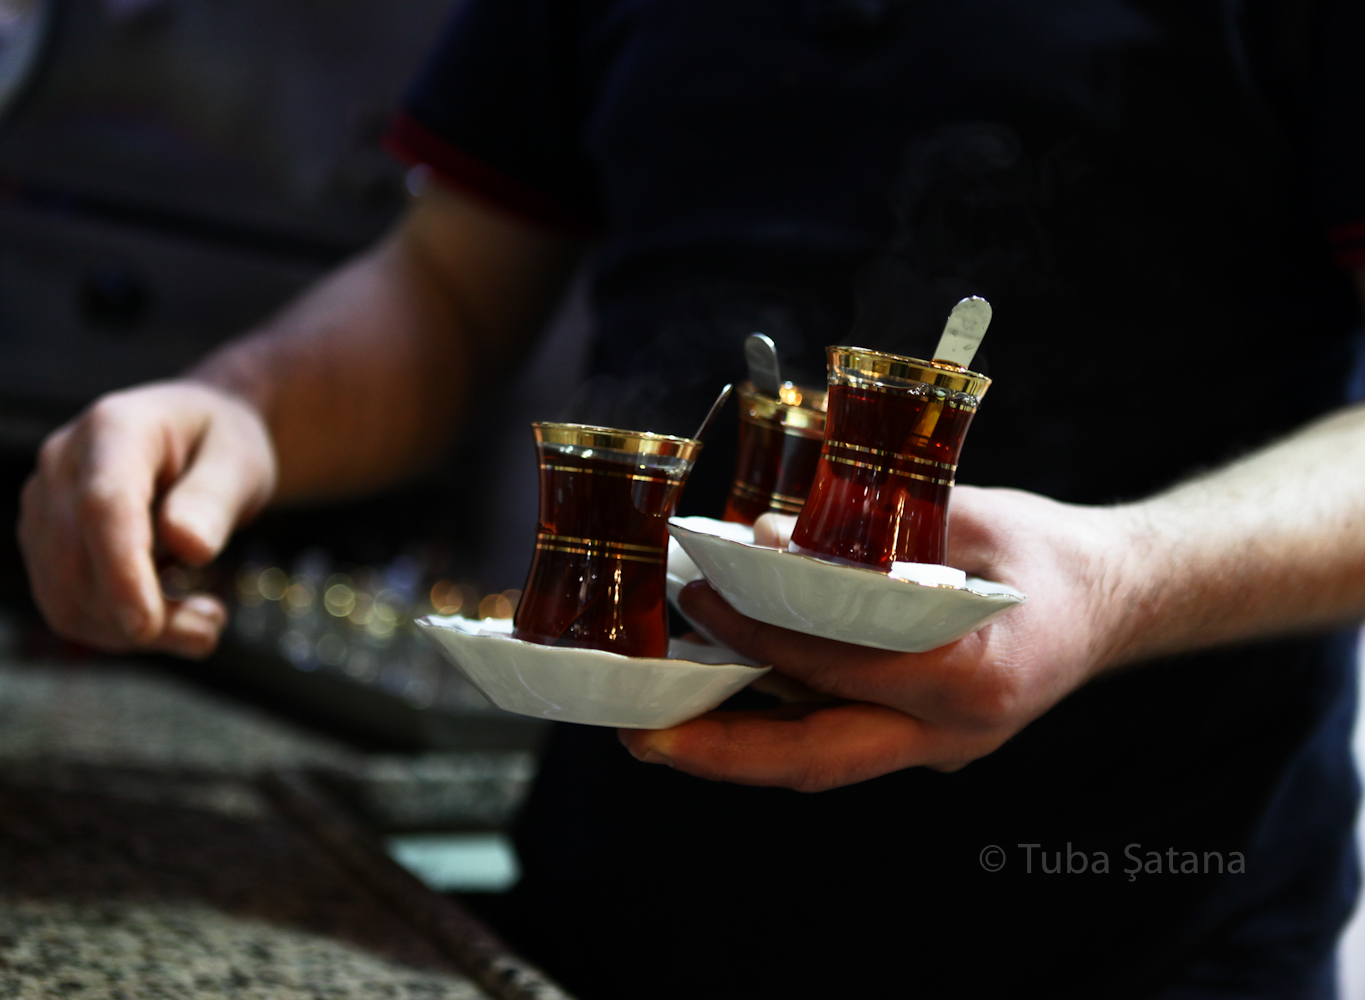 Turkish tea 5, by Tuba Şatana